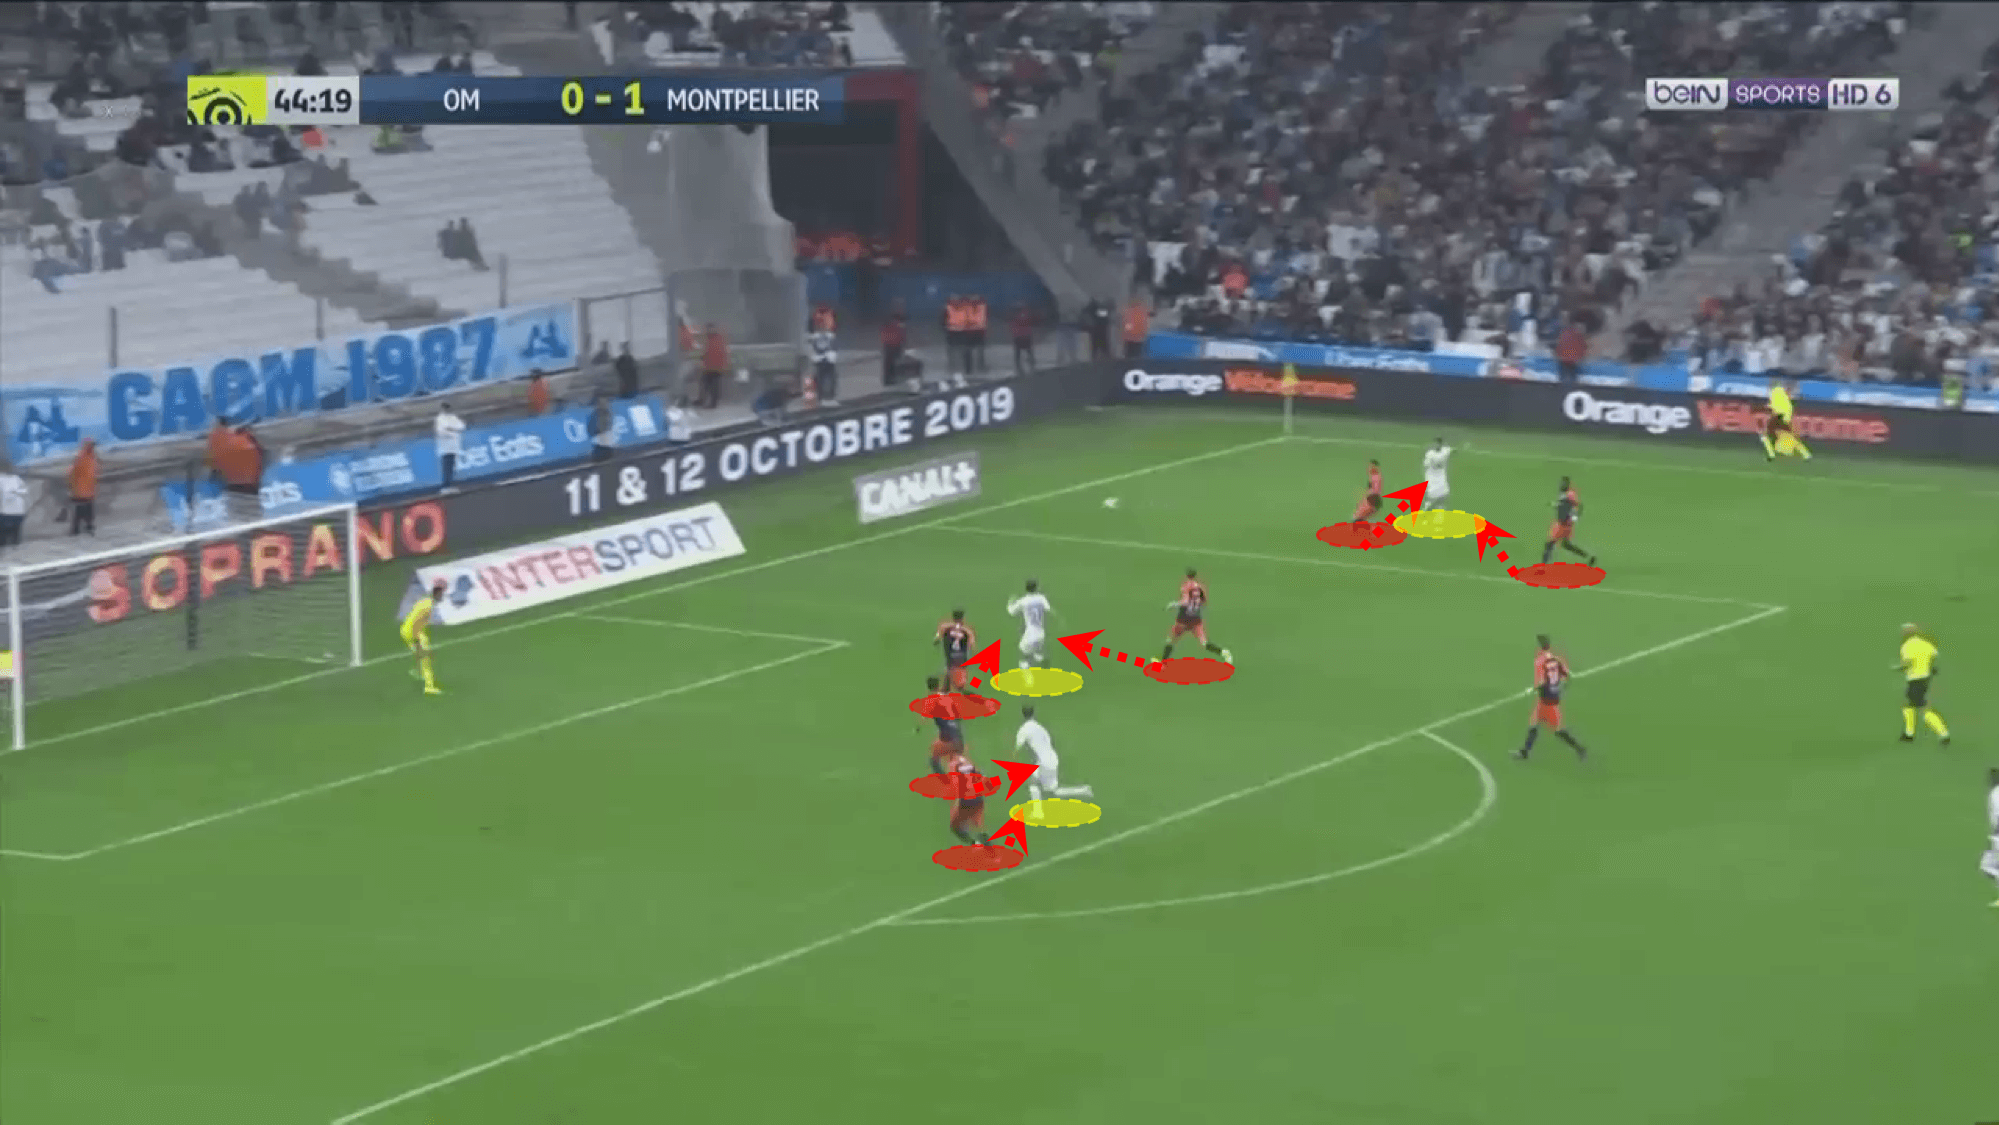 Ligue 1 2019/20: Marseille vs Montpellier - Tactical Analysis tactics